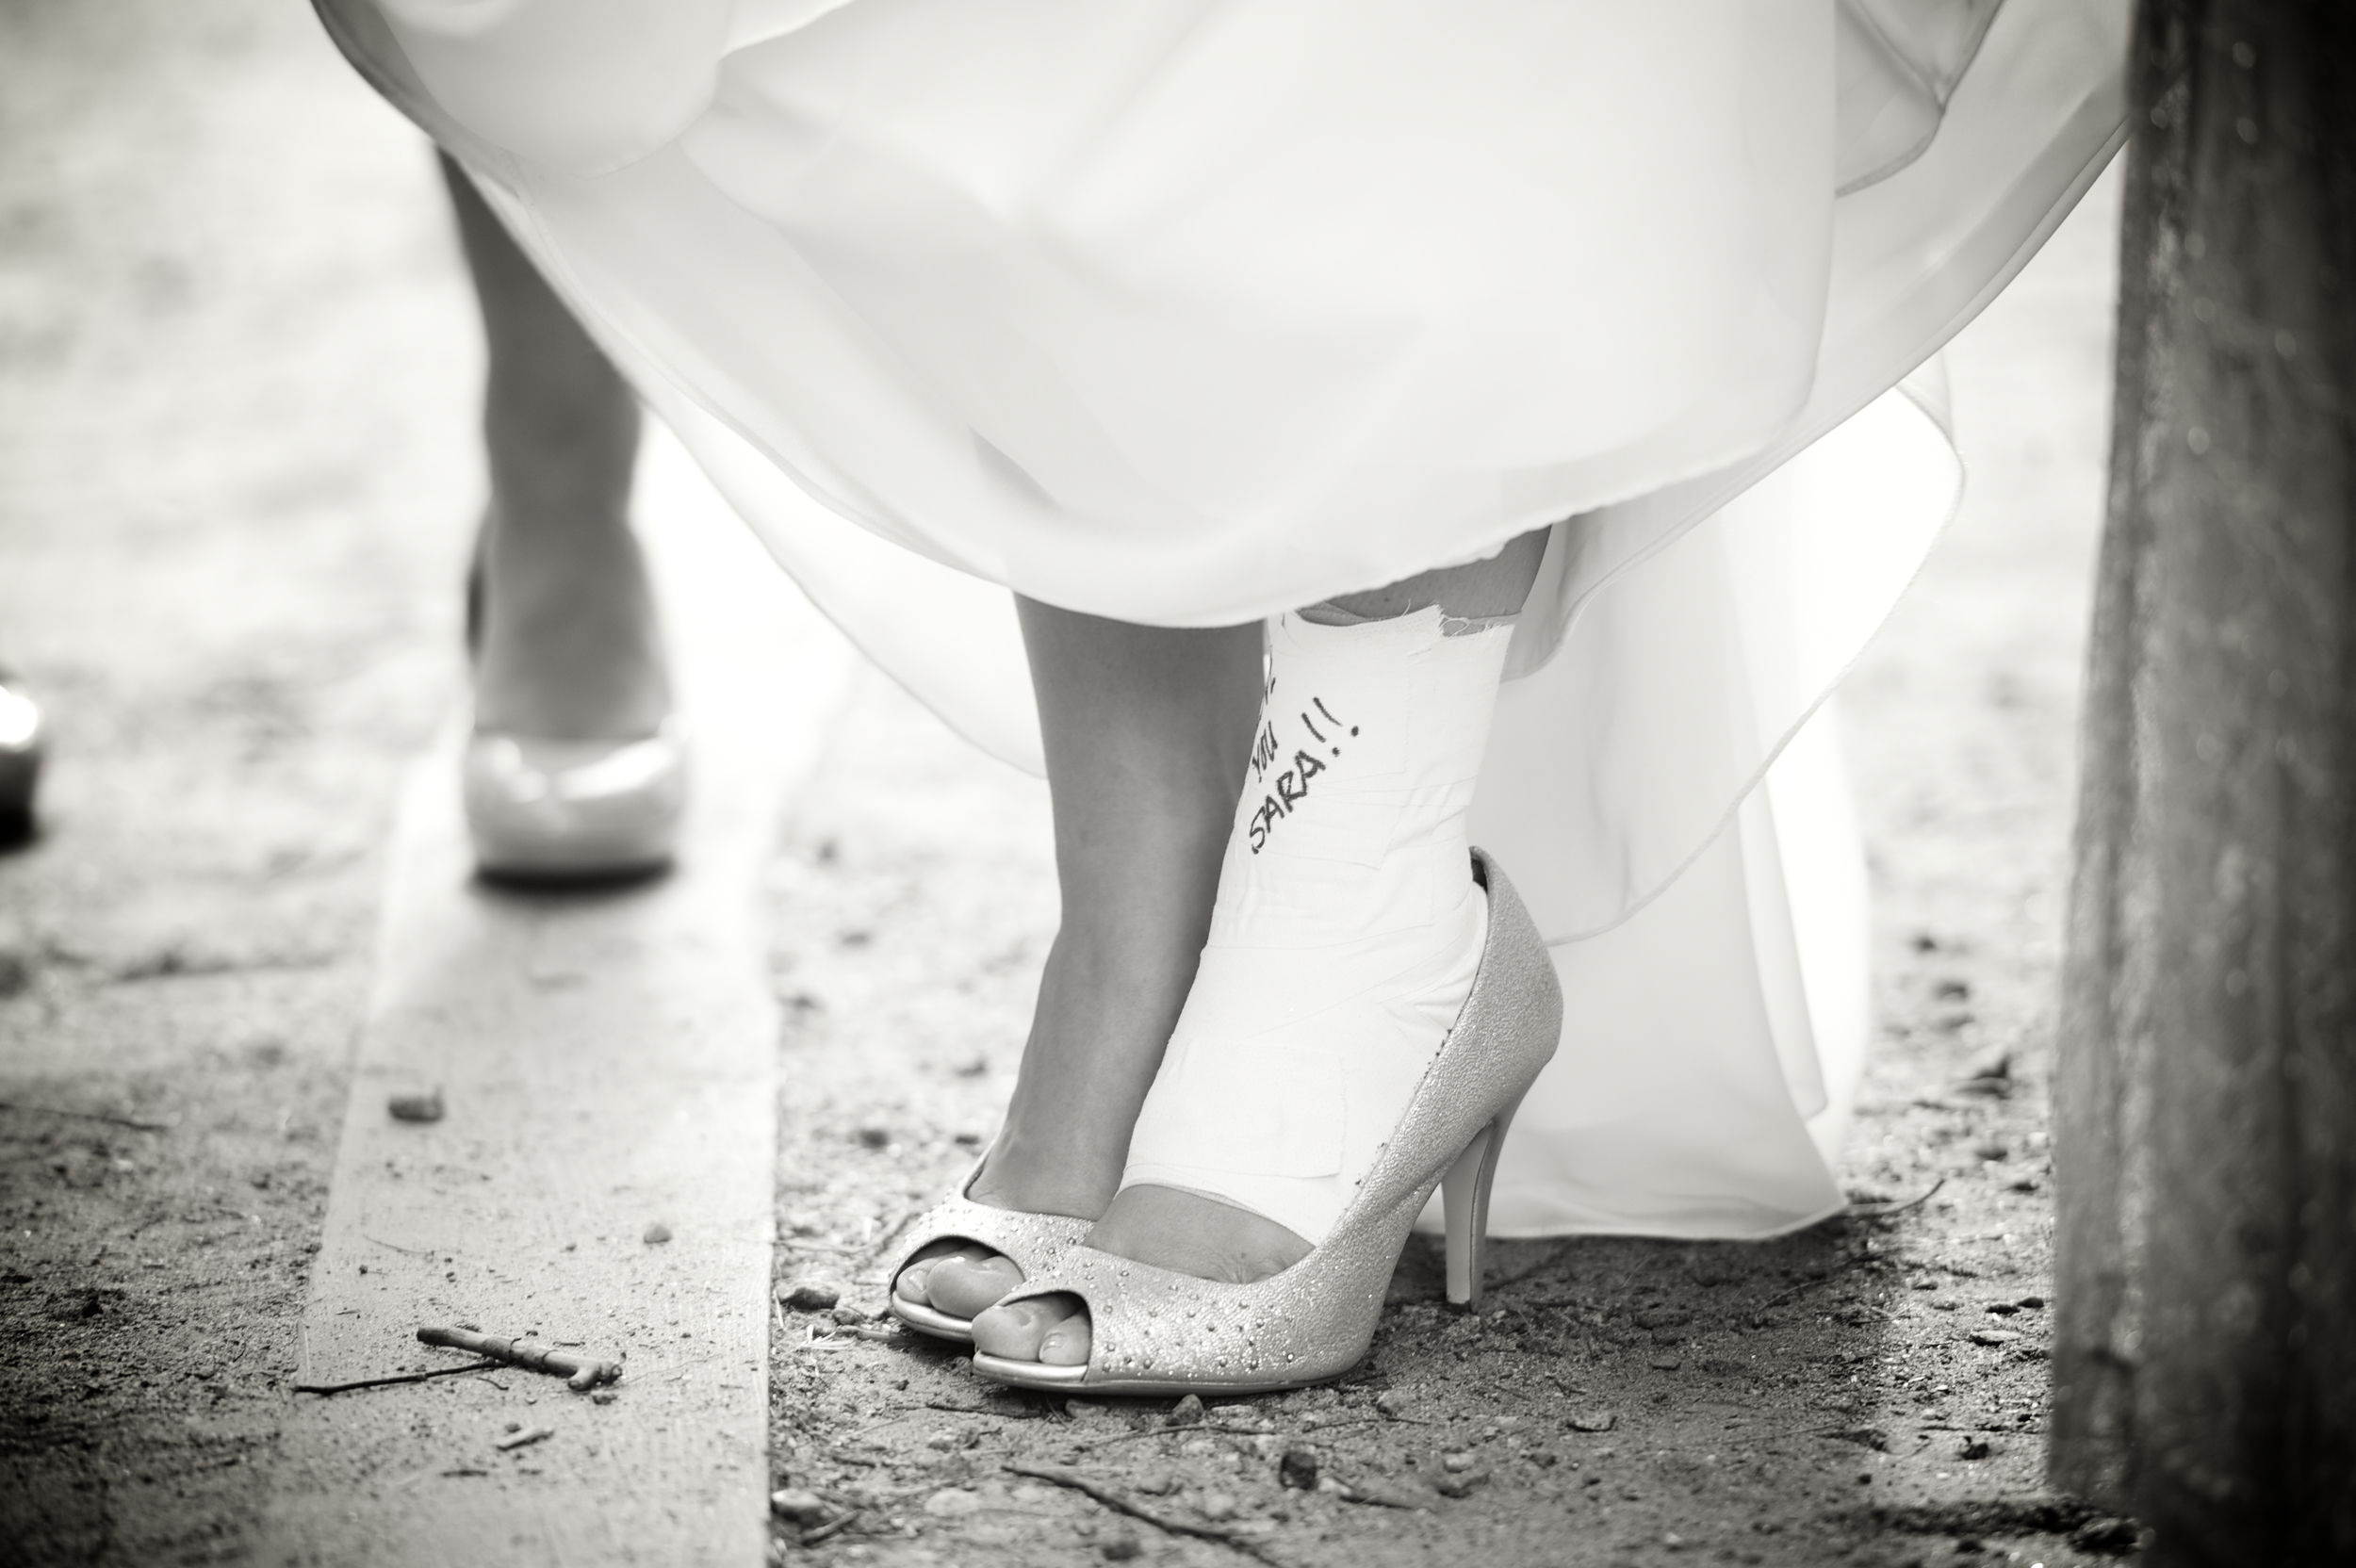 fathers_love_for_daughter_on_wedding_day